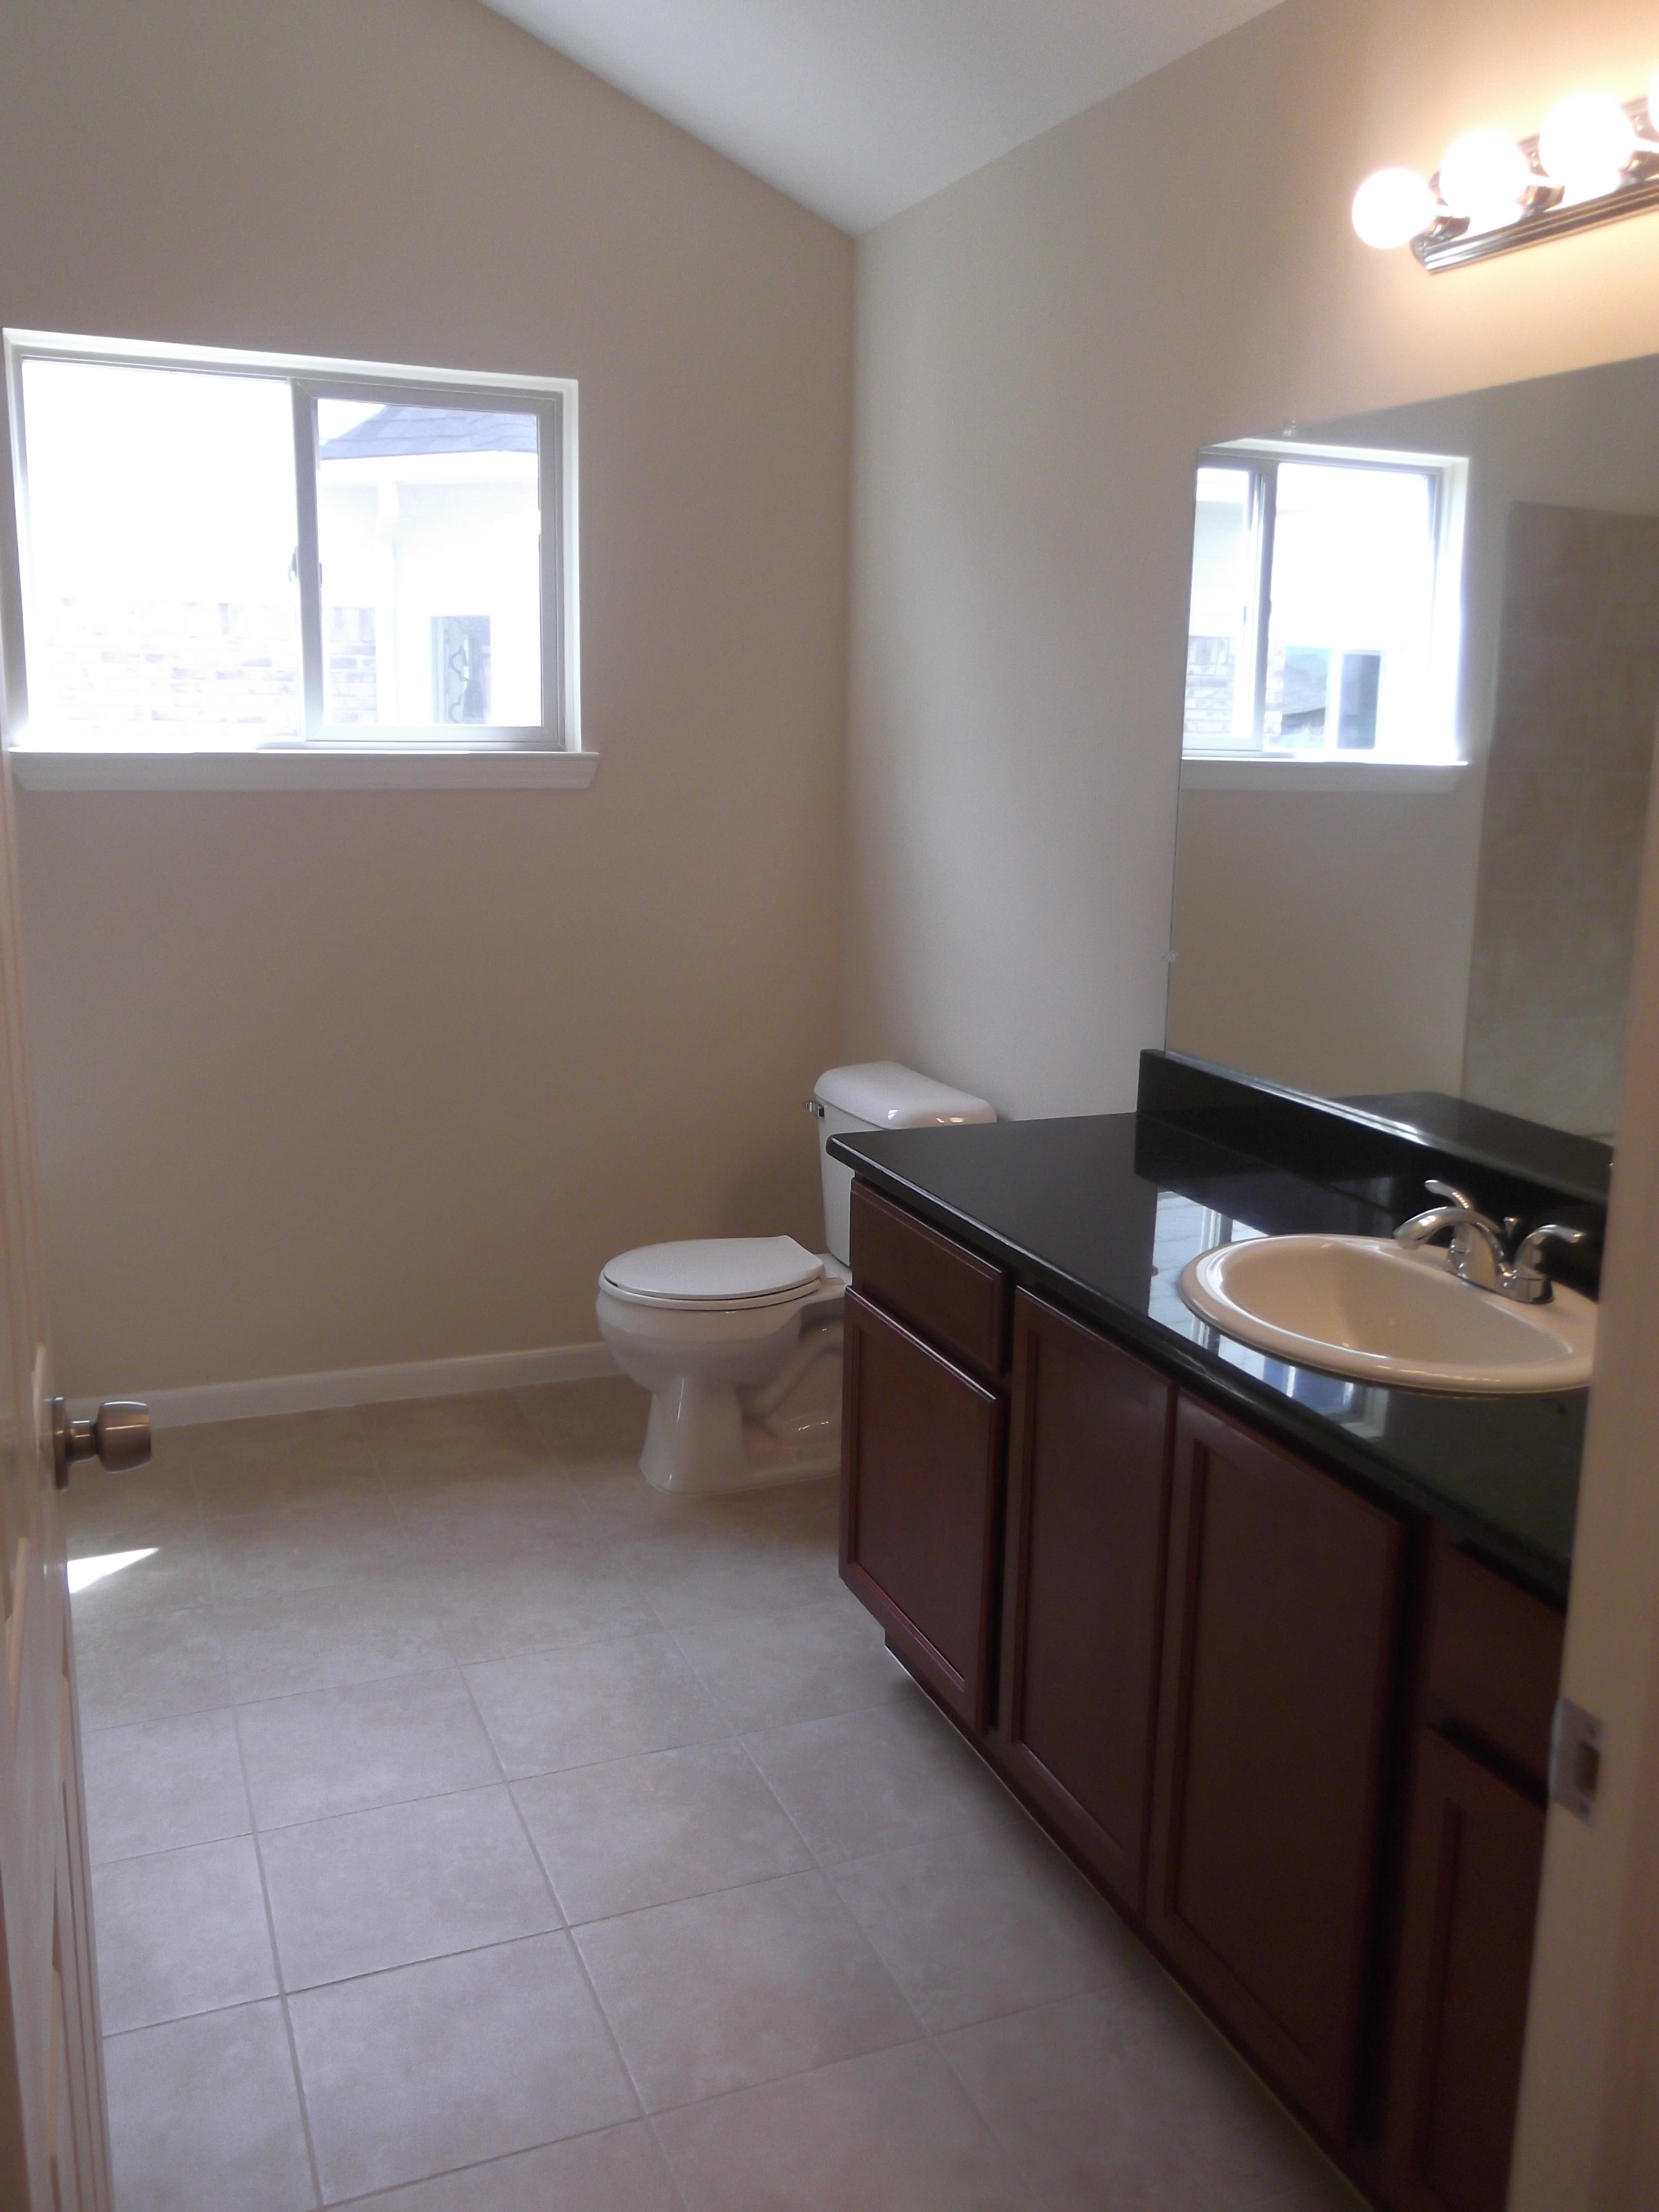 New Homes For Sale, Chestnut R. Main